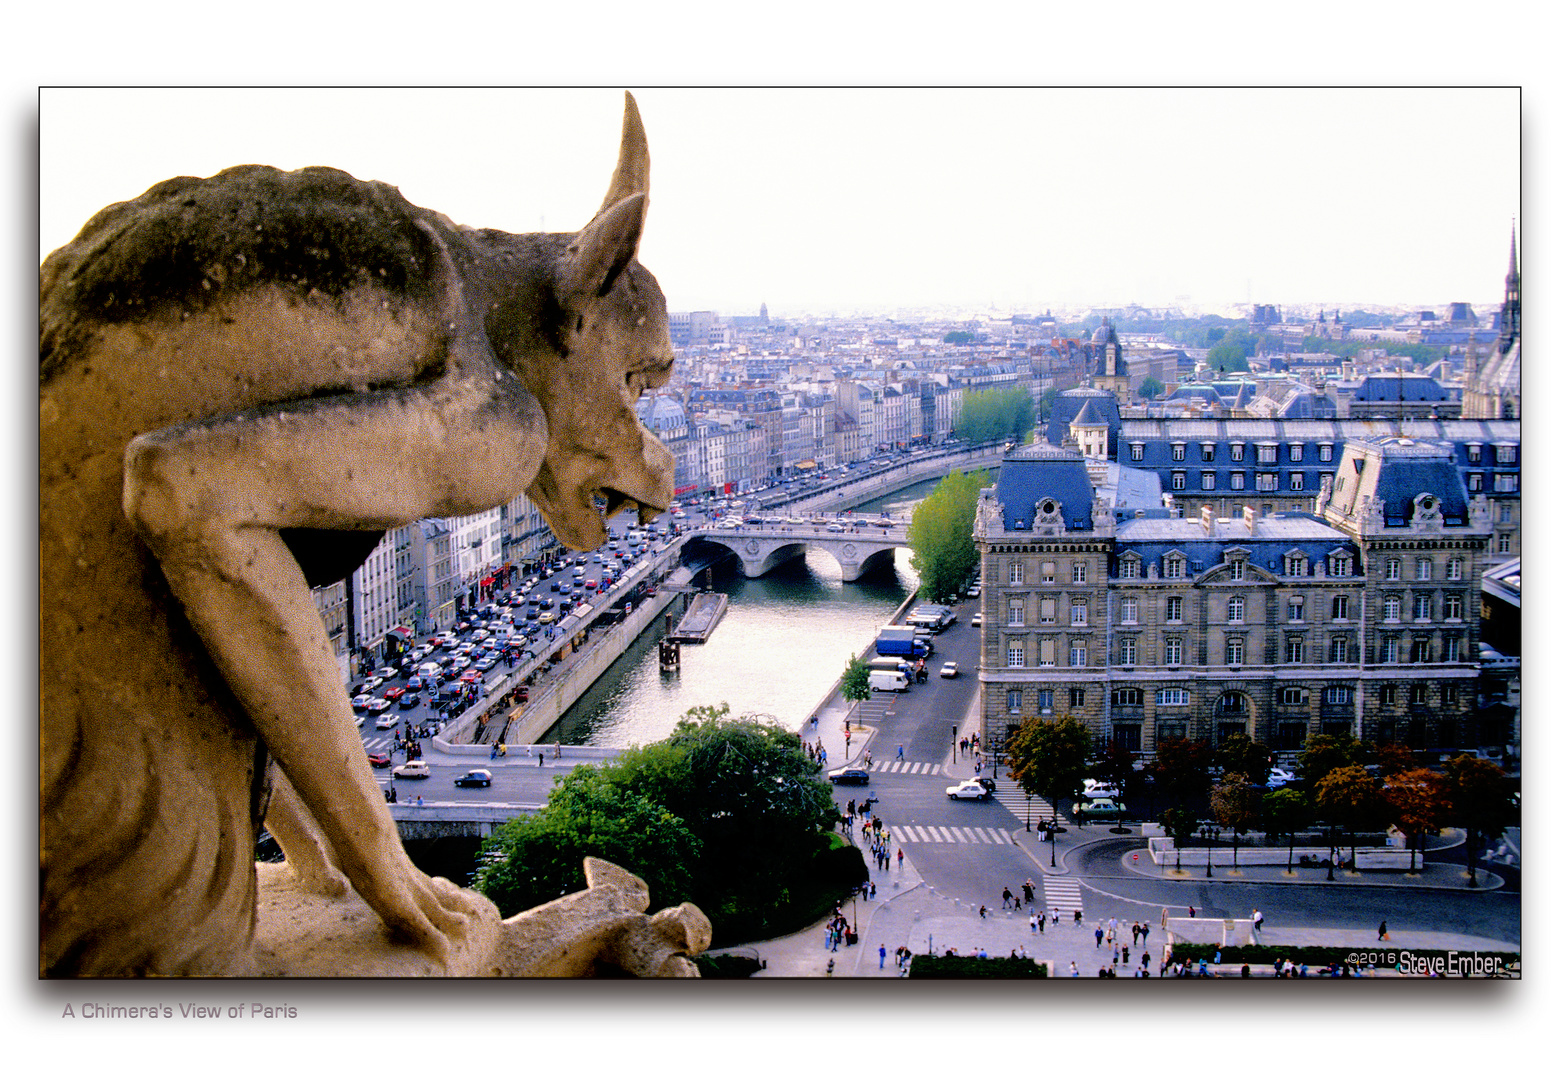 A Chimera's View of Paris